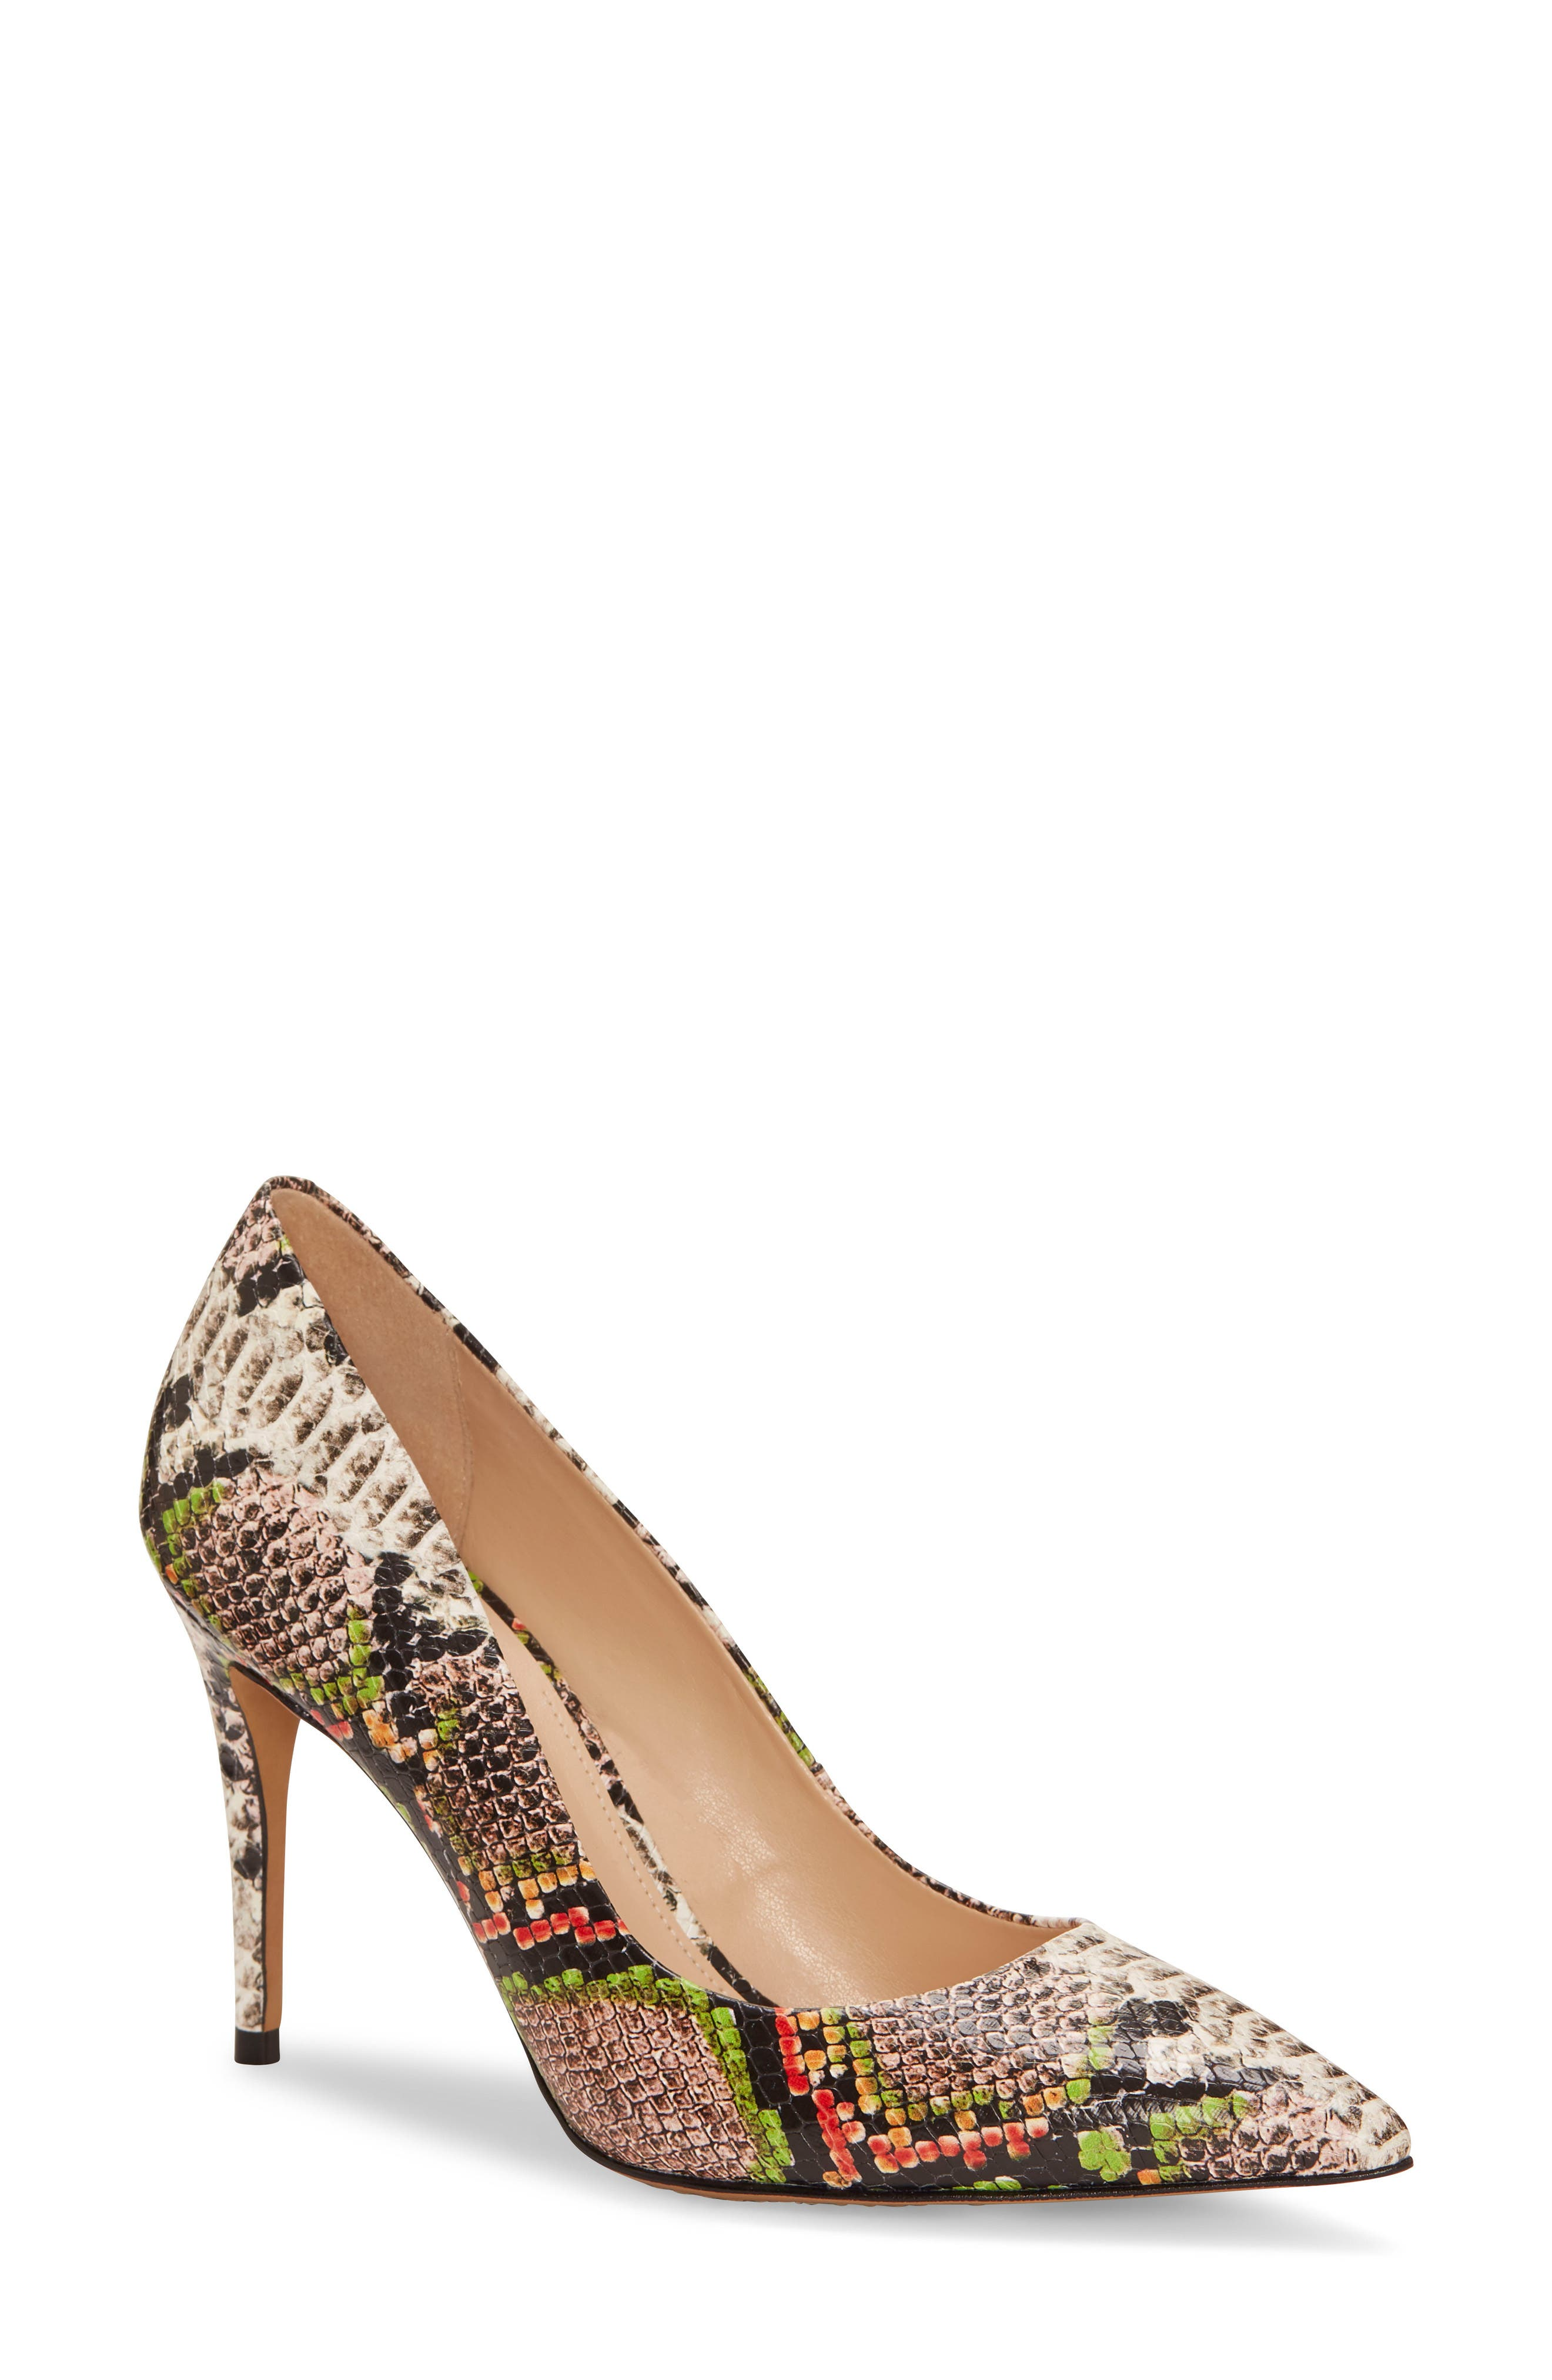 A stiletto pump puts a bold spin on the animal-print trend while keeping the silhouette classic with a smart pointy toe. Style Name: Vince Camuto Treesha Pump (Women). Style Number: 5882170. Available in stores.